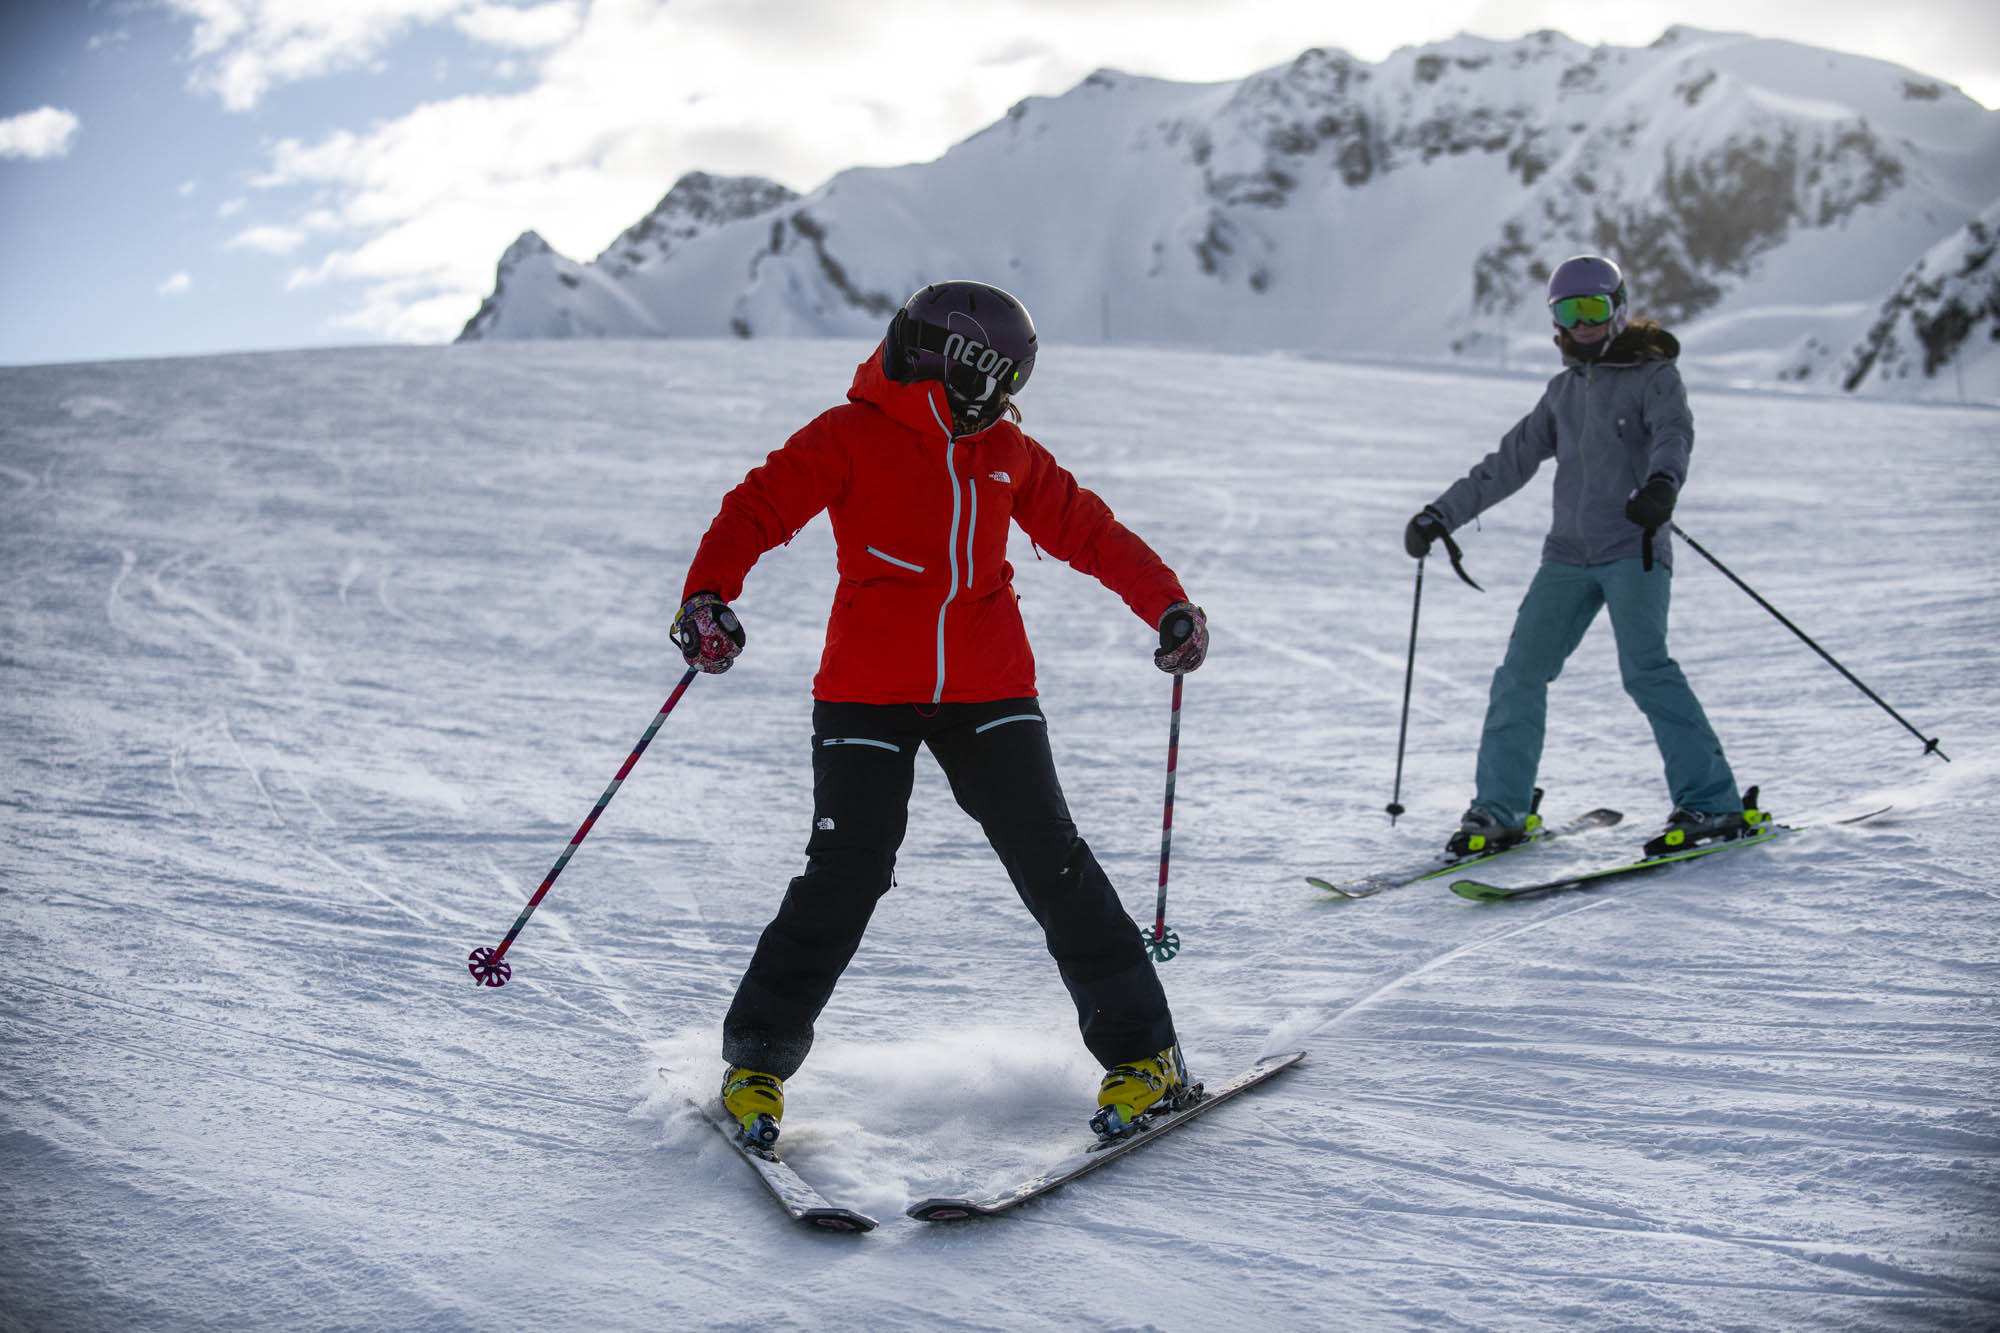 Learning to ski - ski school for beginners